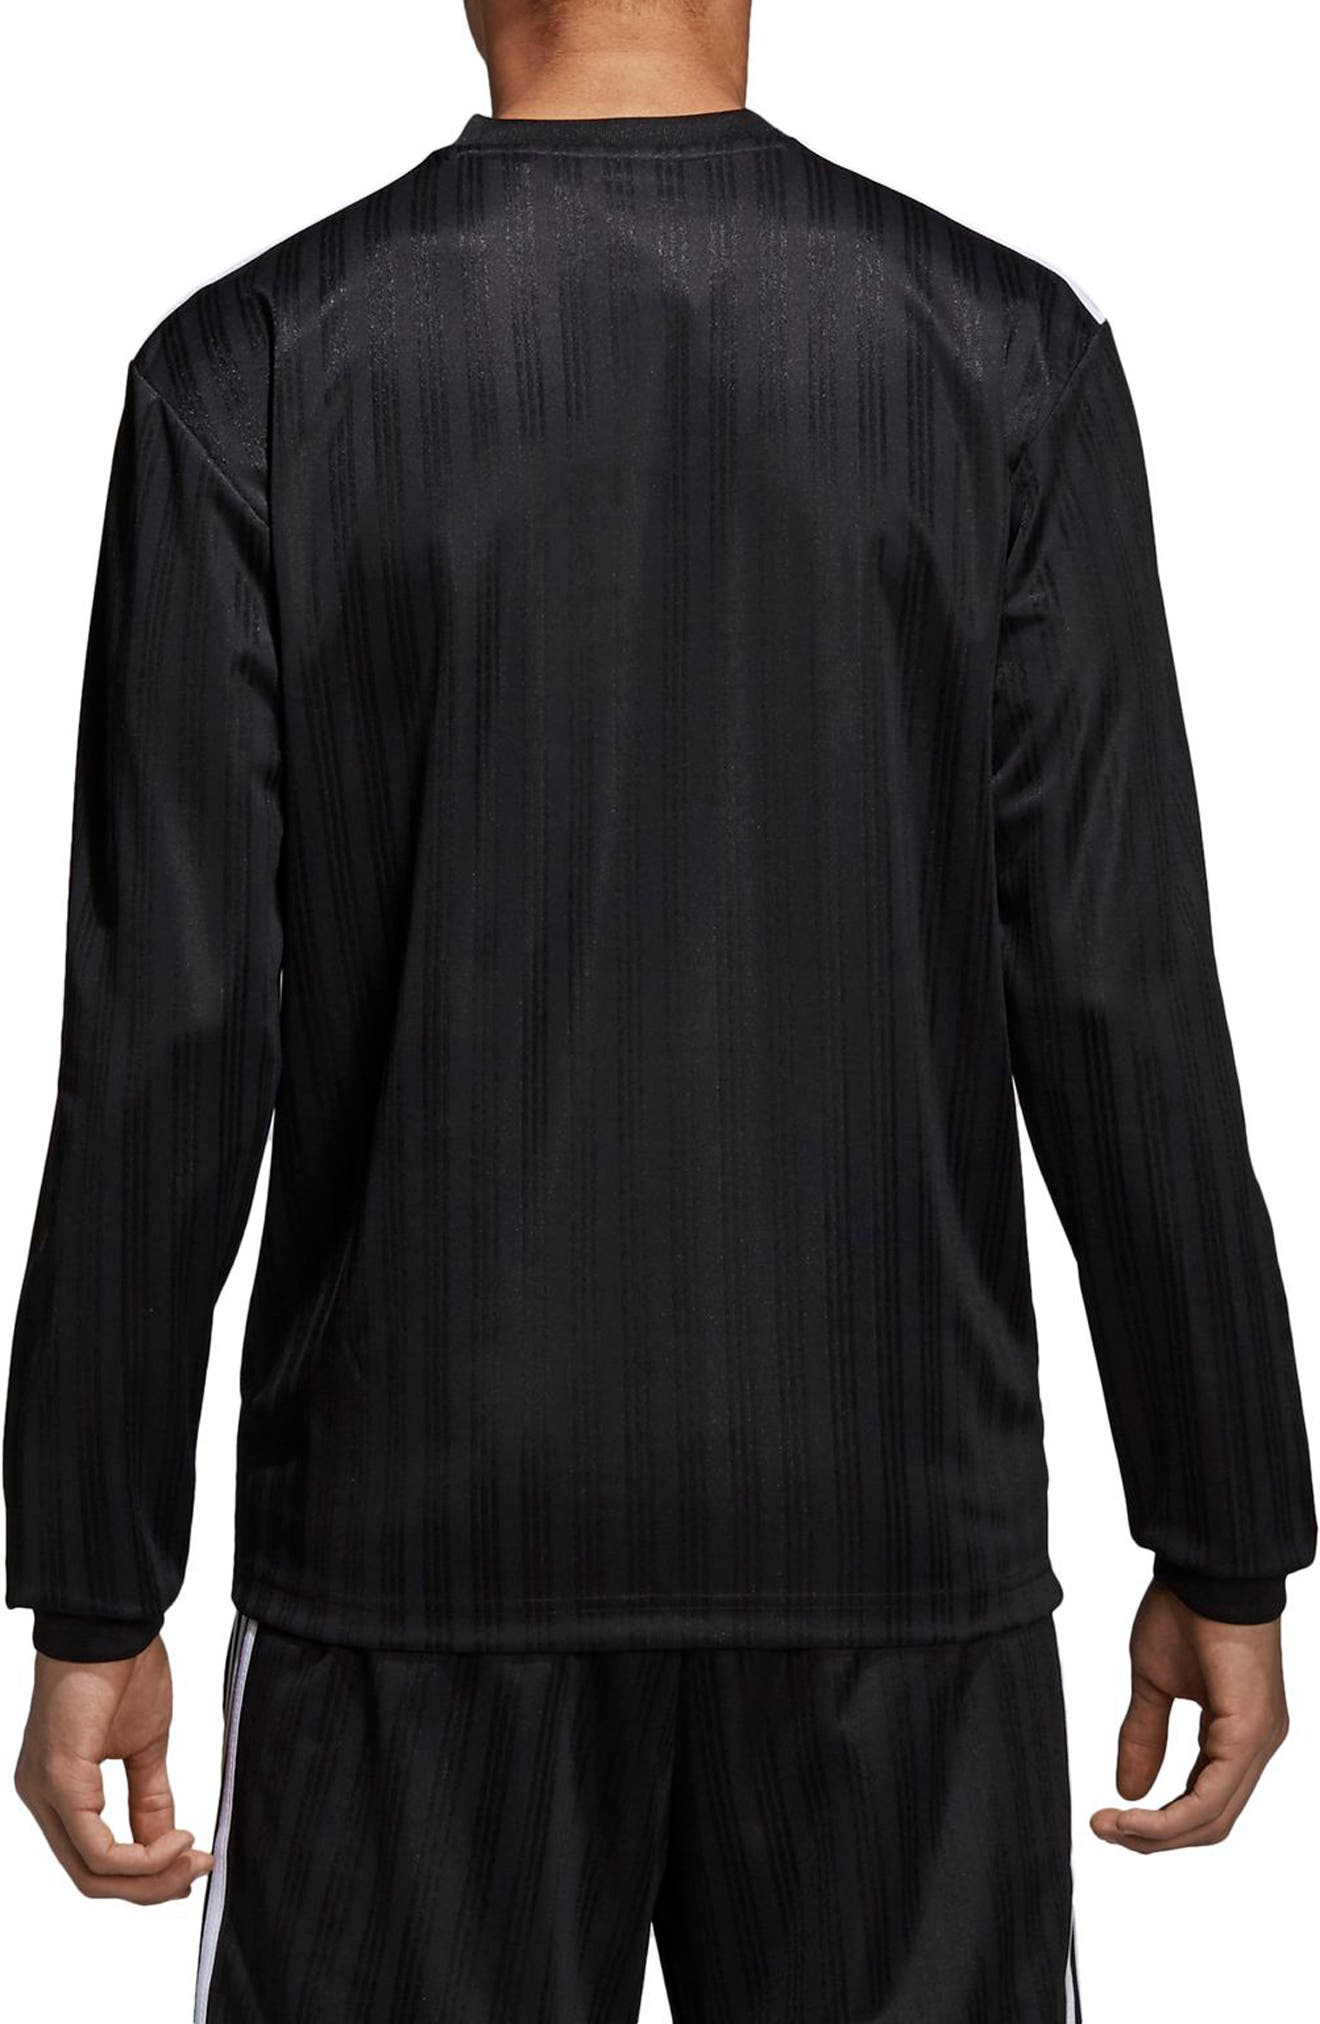 ADIDAS ORIGINALS,                             Long Sleeve Jersey Shirt,                             Alternate thumbnail 2, color,                             001